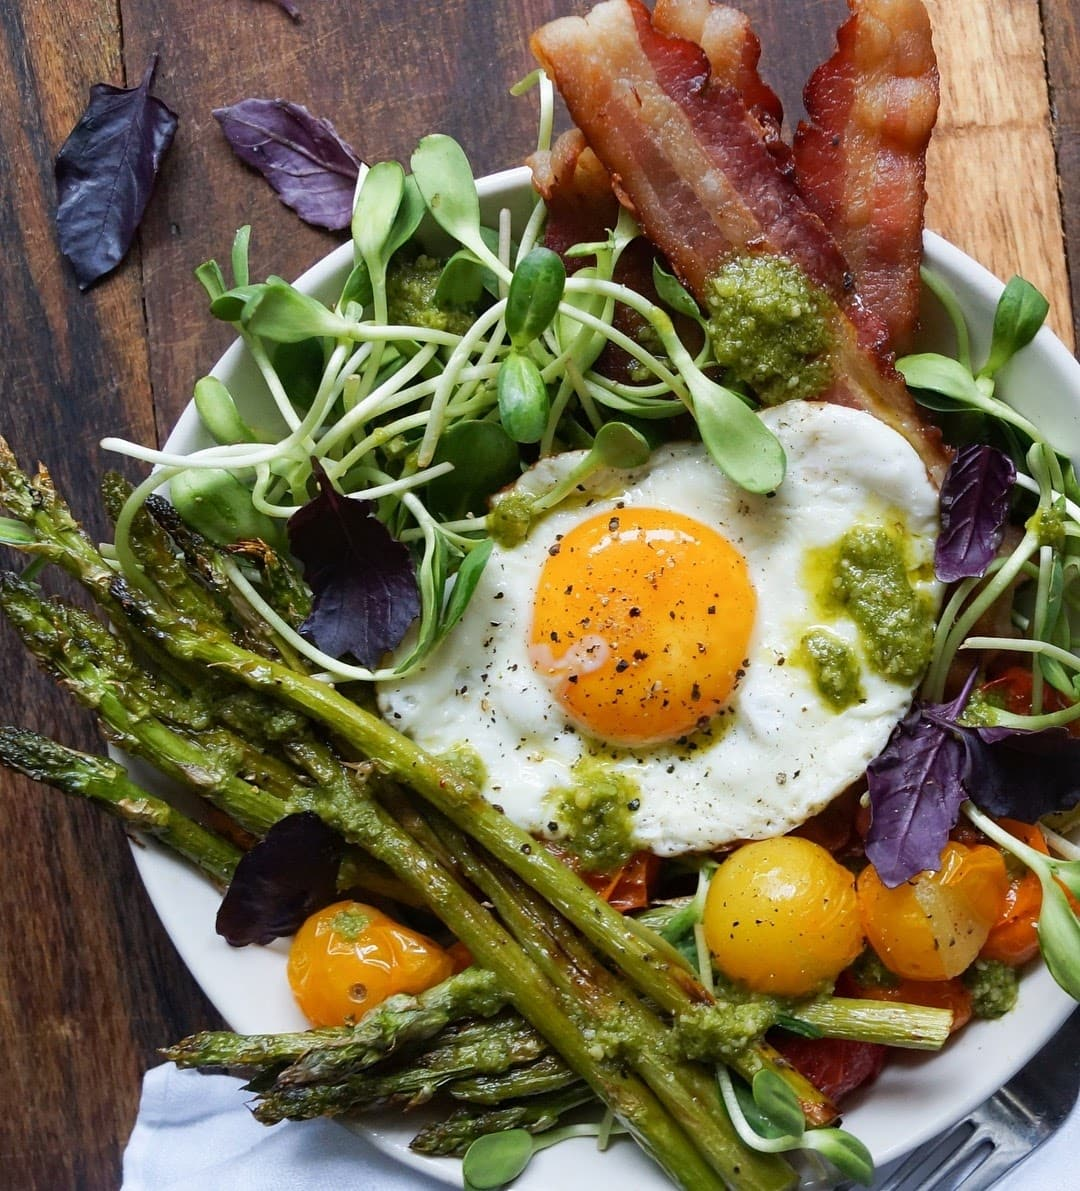 A breakfast bowl filled with roasted vegetables, bacon, a fried egg, and fresh herbs that's drizzled with pesto.